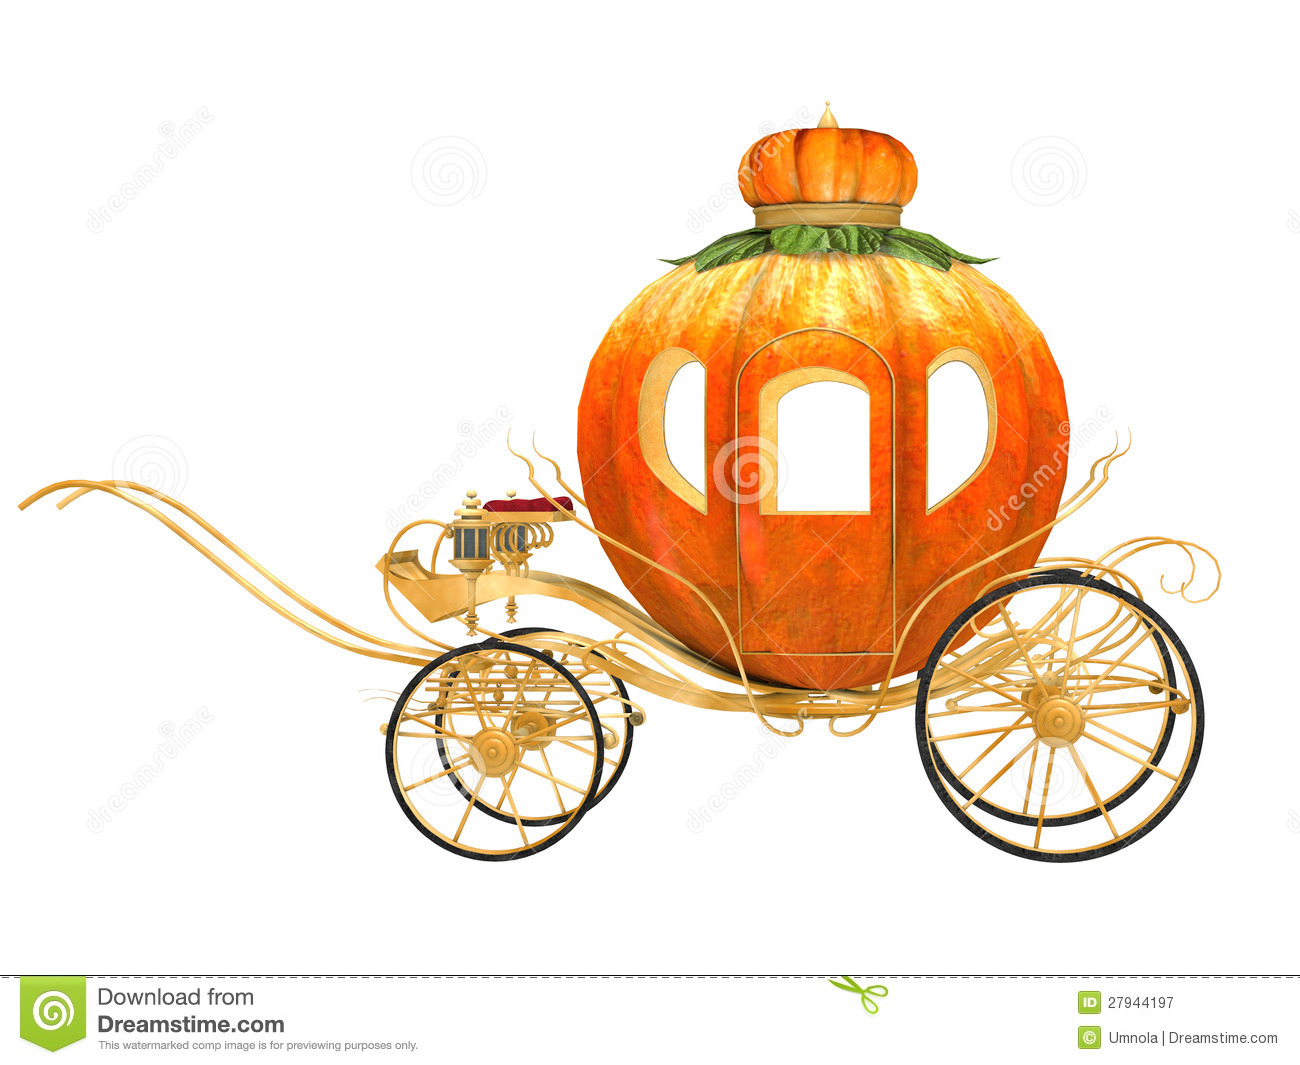 Pumpkin Carriage Cake